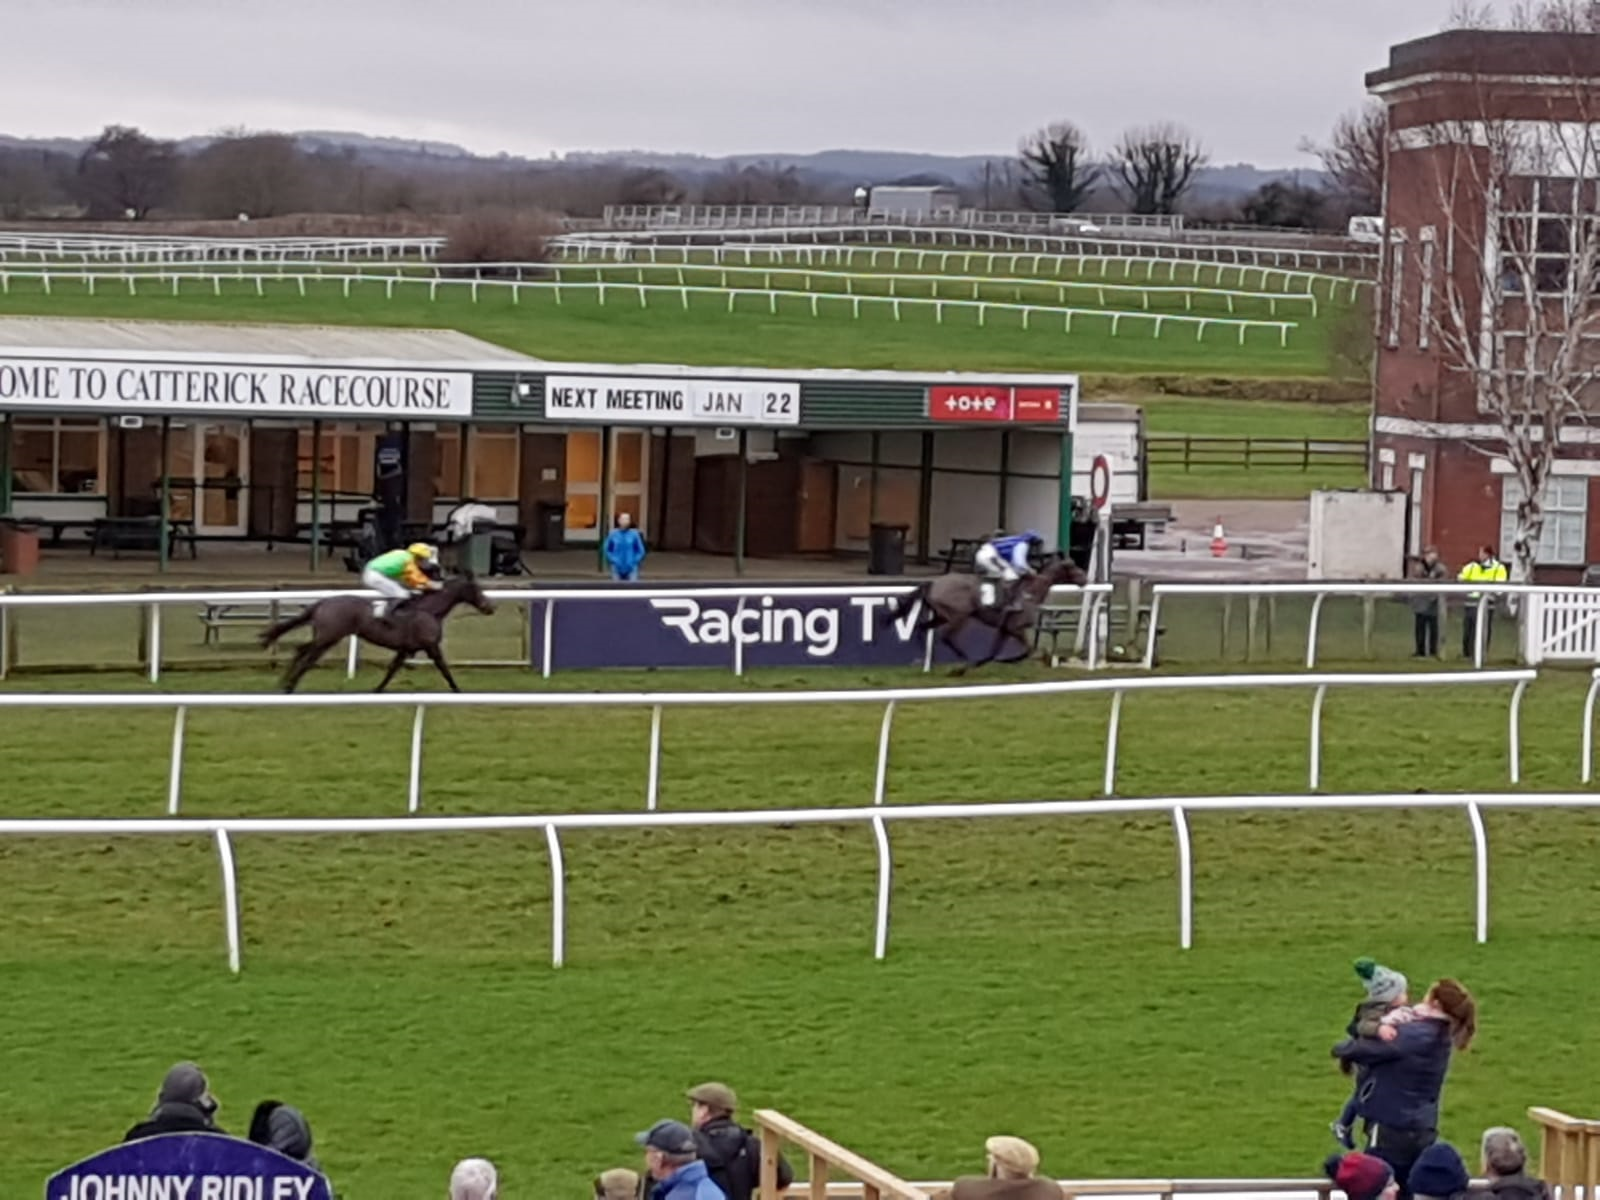 Little Bruce and Tommy Dowson race to victory at Catterick